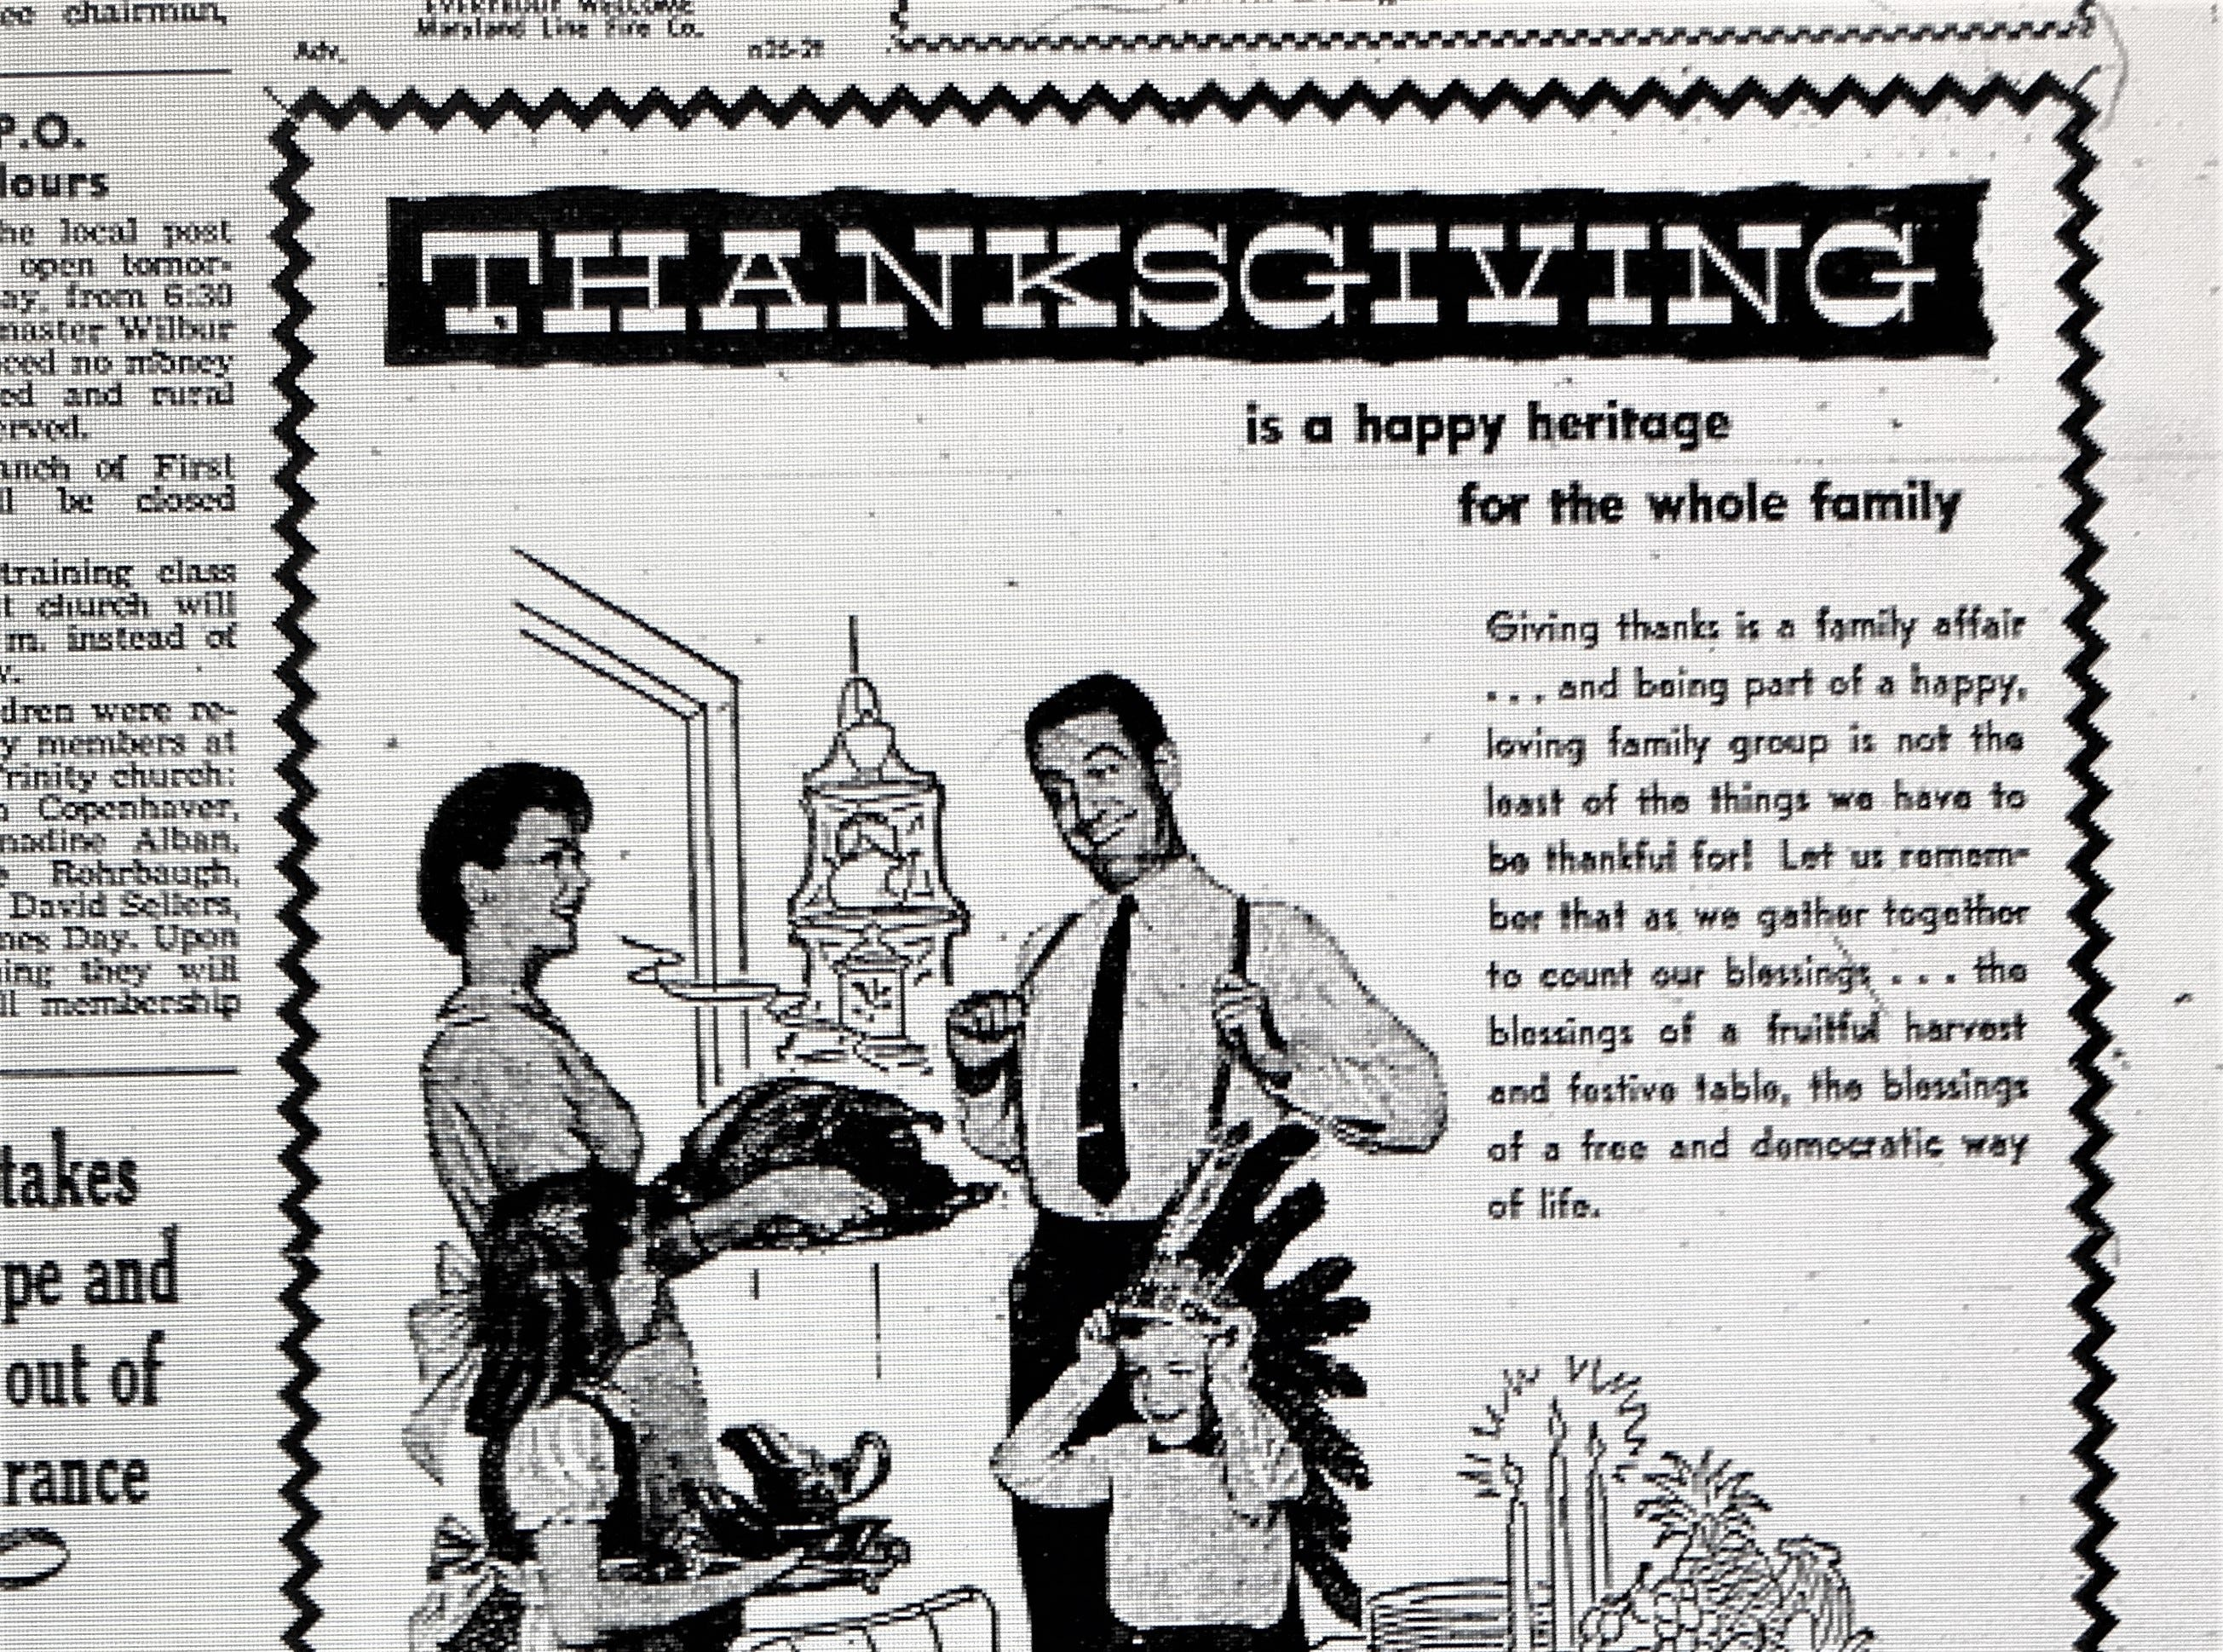 A Thanksgiving ad from Smith Village home furnishing in Jacobus. The advertisement appeared in the Wednesday morning edition of the York Gazette and Daily on November 26, 1958.